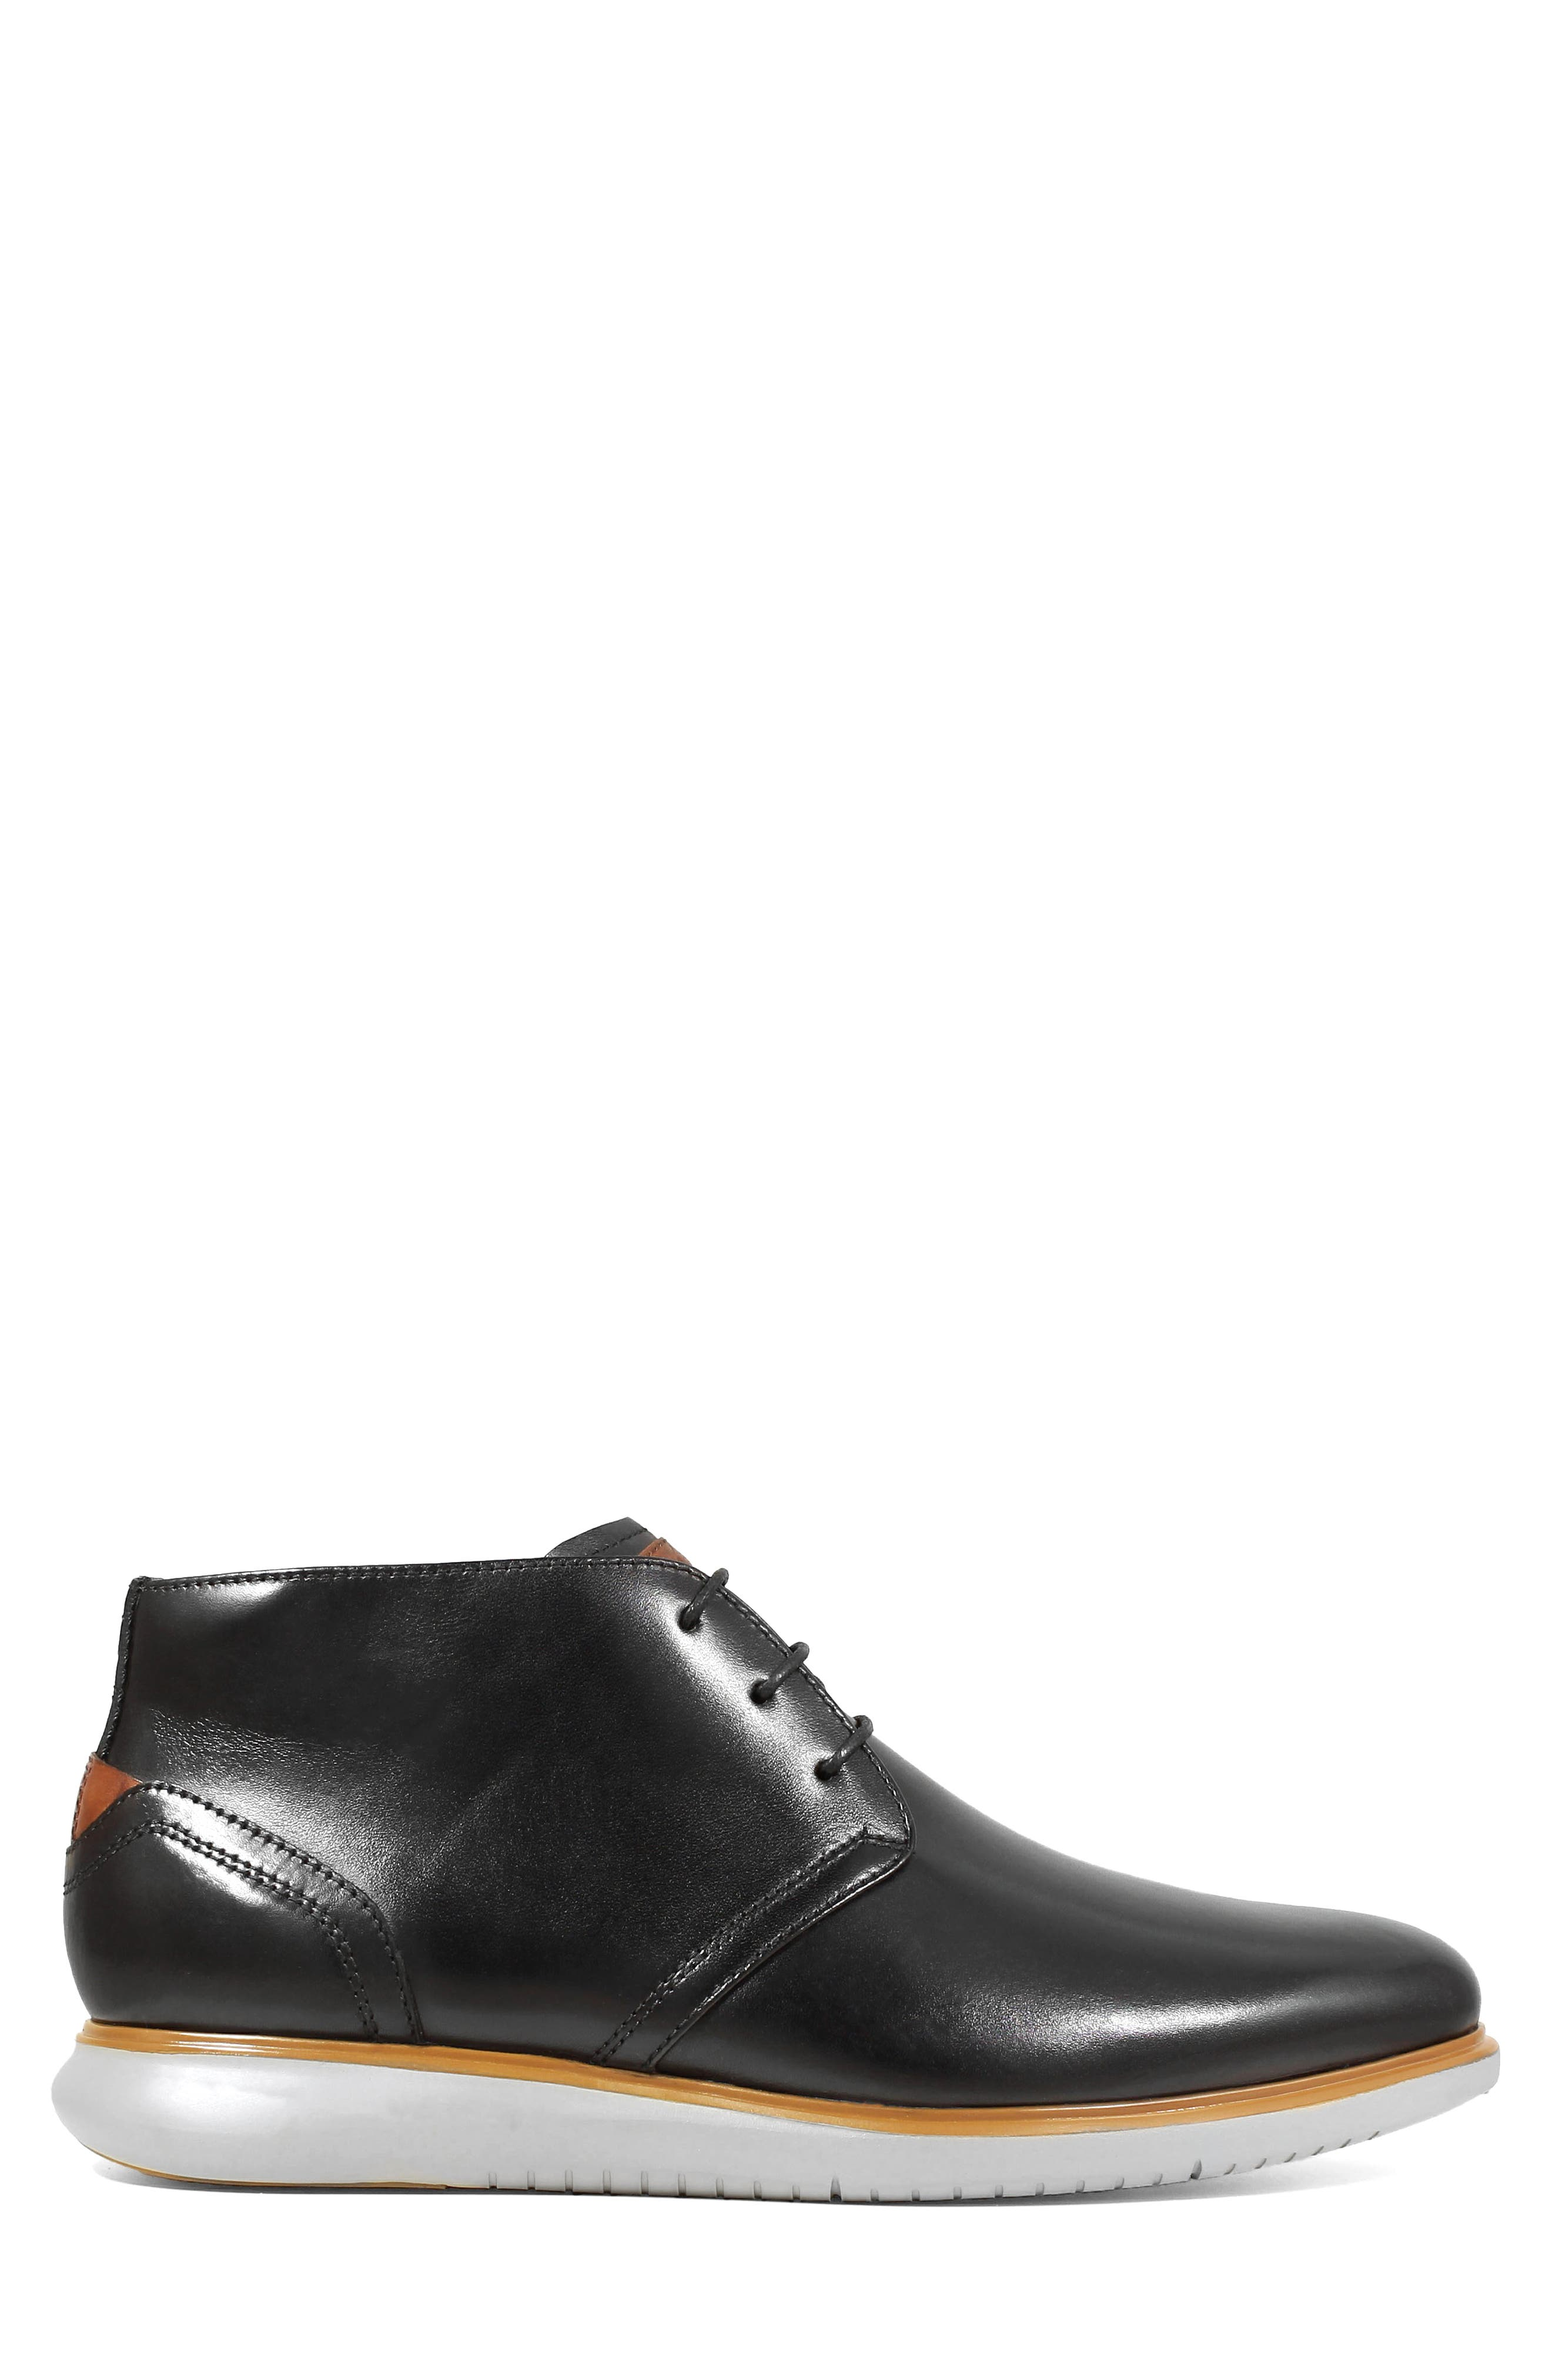 FLORSHEIM,                             Fuel Chukka Boot,                             Alternate thumbnail 3, color,                             BLACK LEATHER